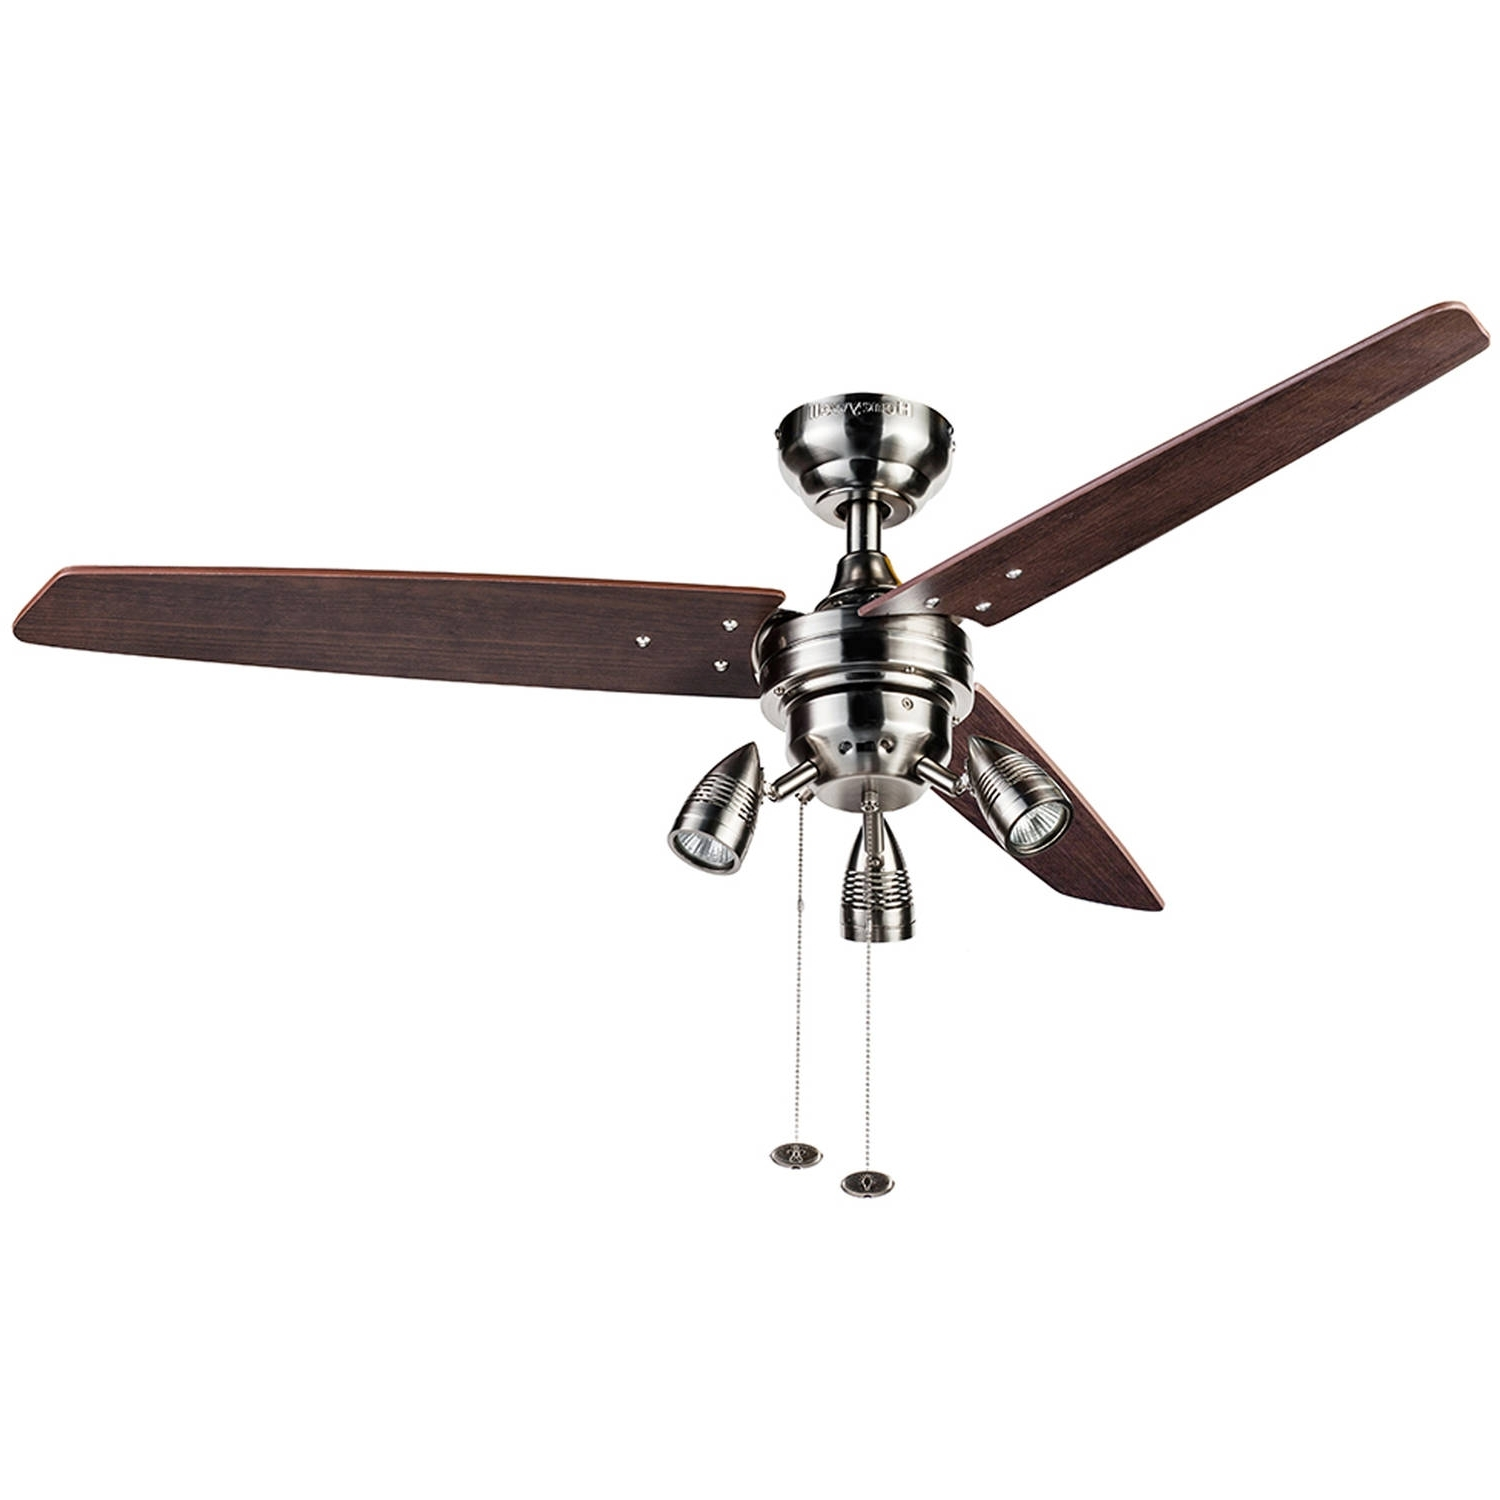 Kmart Outdoor Ceiling Fans With 2018 Ceiling Fan: Recomended Walmart Ceiling Fans For Home Kmart Ceiling (Gallery 6 of 20)